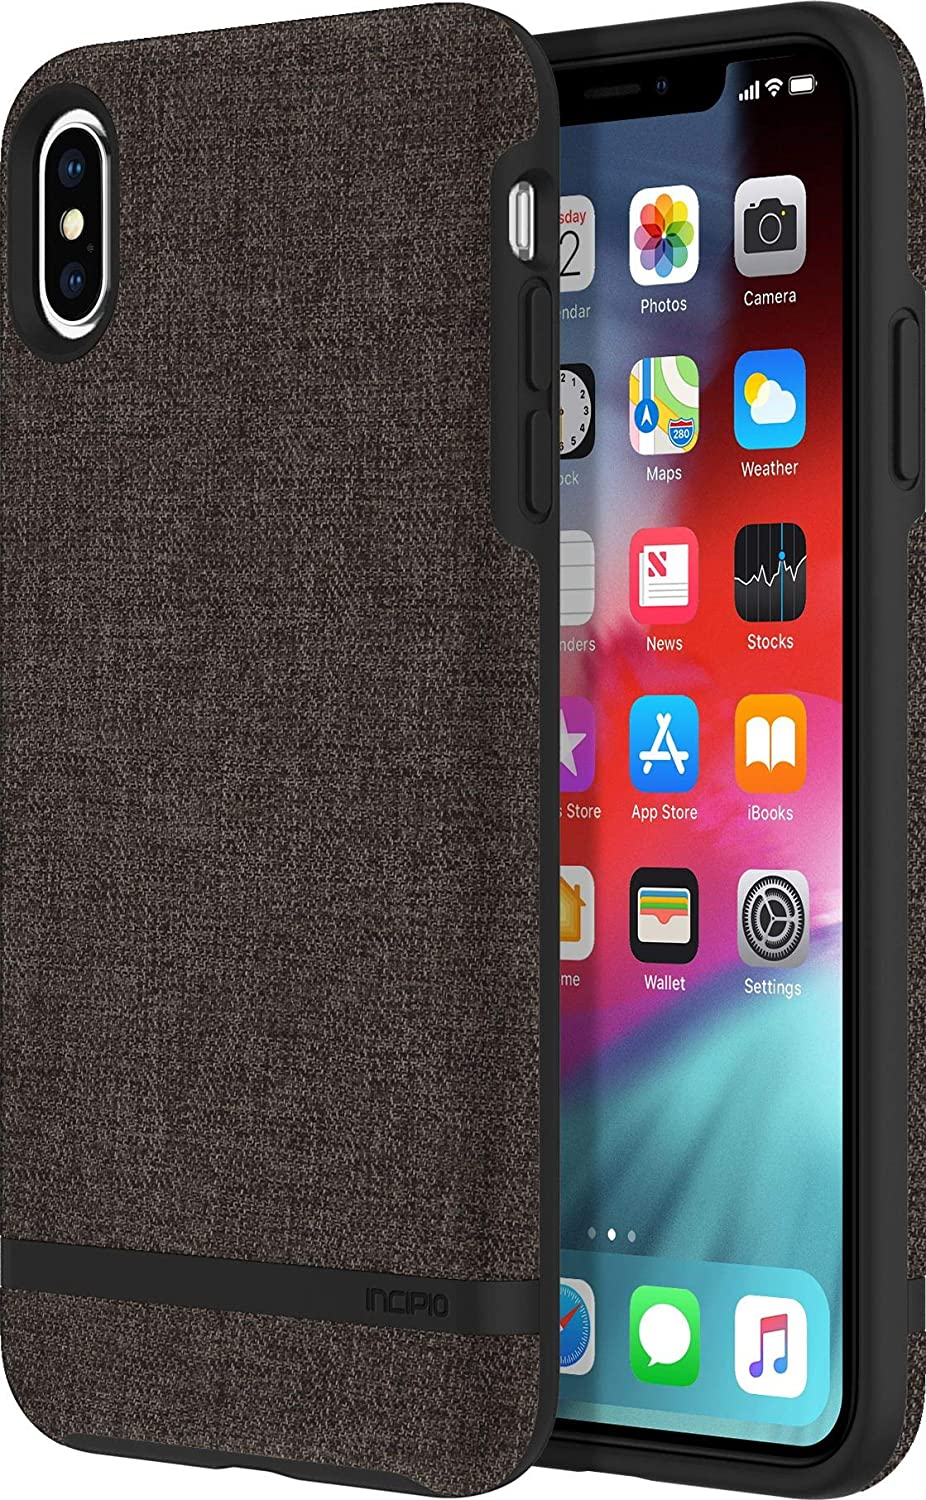 """Incipio Carnaby Stylish Slim Protective Case for iPhone Xs Max (6.5"""") with Soft Premium Fabric and Anti-Slip Grip - Gray"""